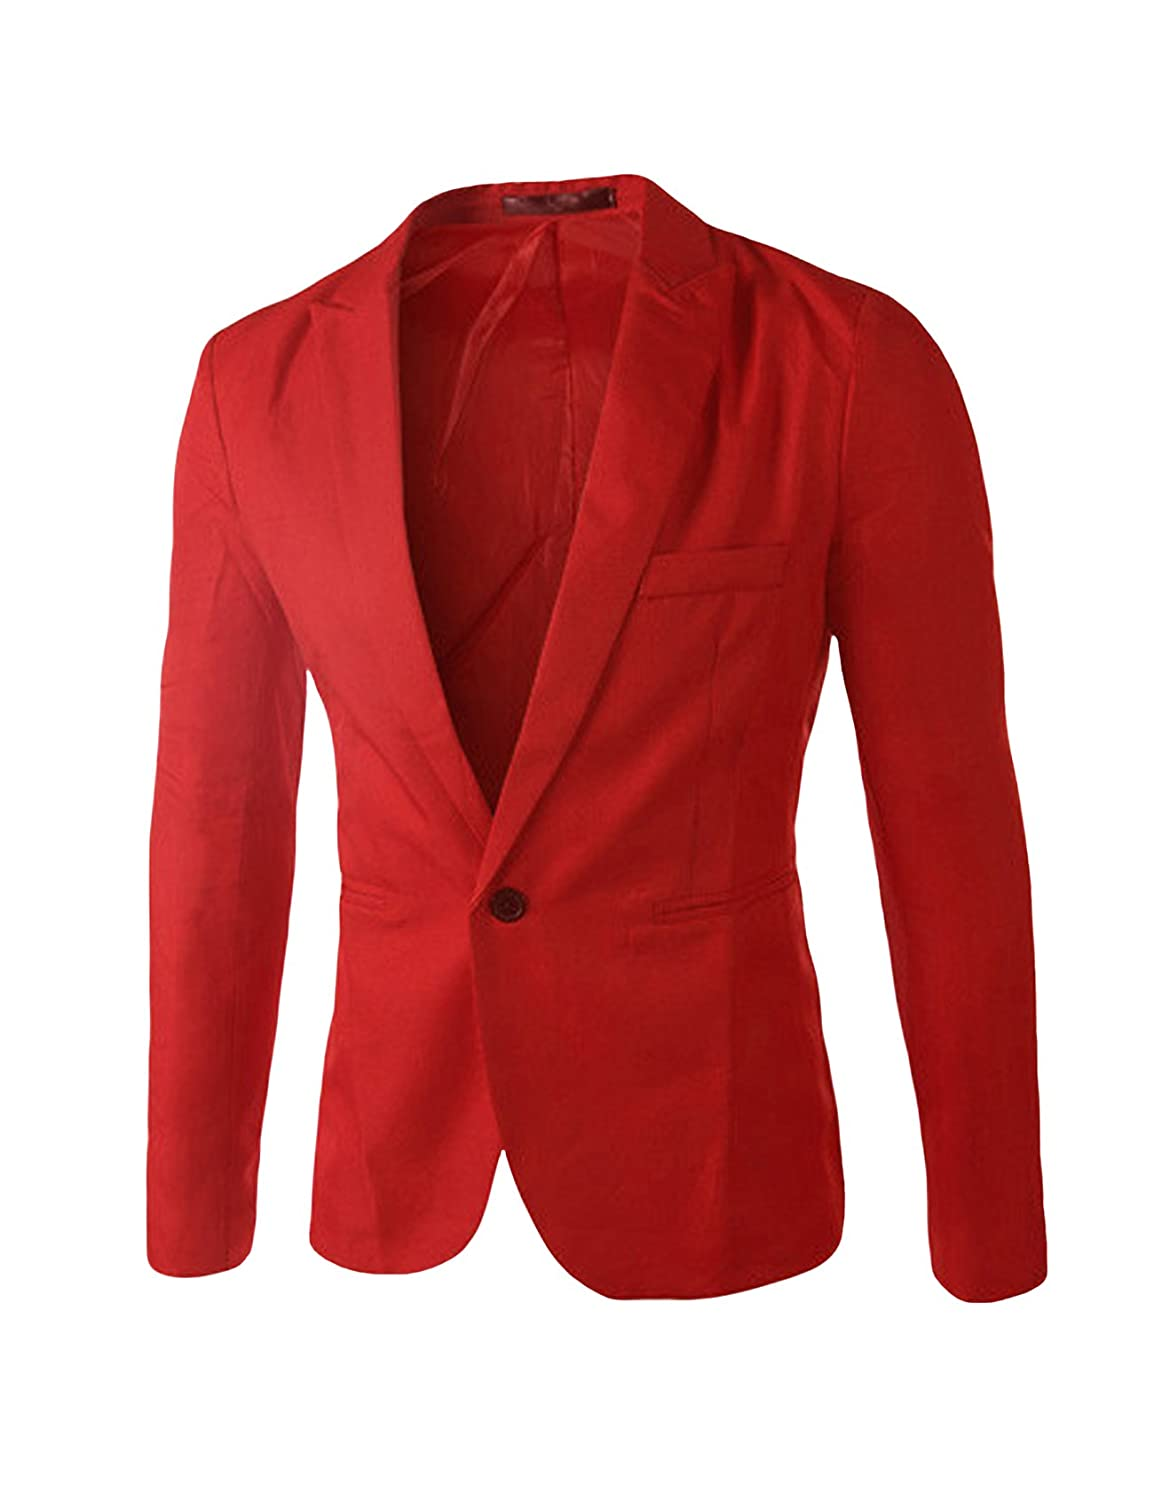 Bestgift Men's Solid Color Slim One Button Blazer BSGFNC0274